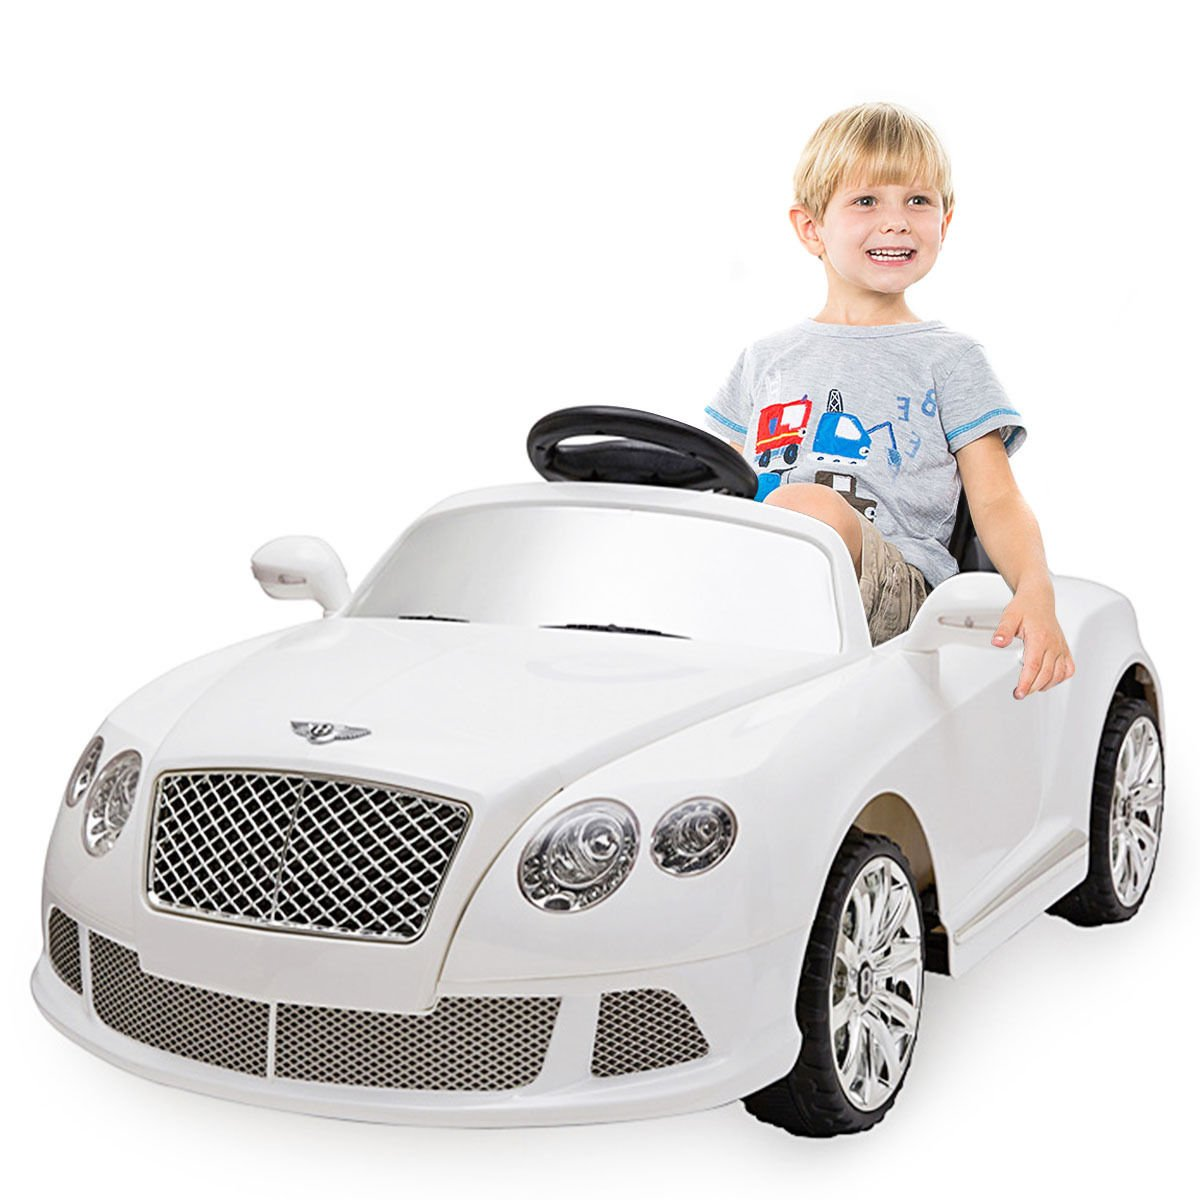 Bentley Gtc 12v Ride On Kids Battery Power Wheels Car Rc: 12V Bentley GTC Kids Ride On Car Electric RC Remote